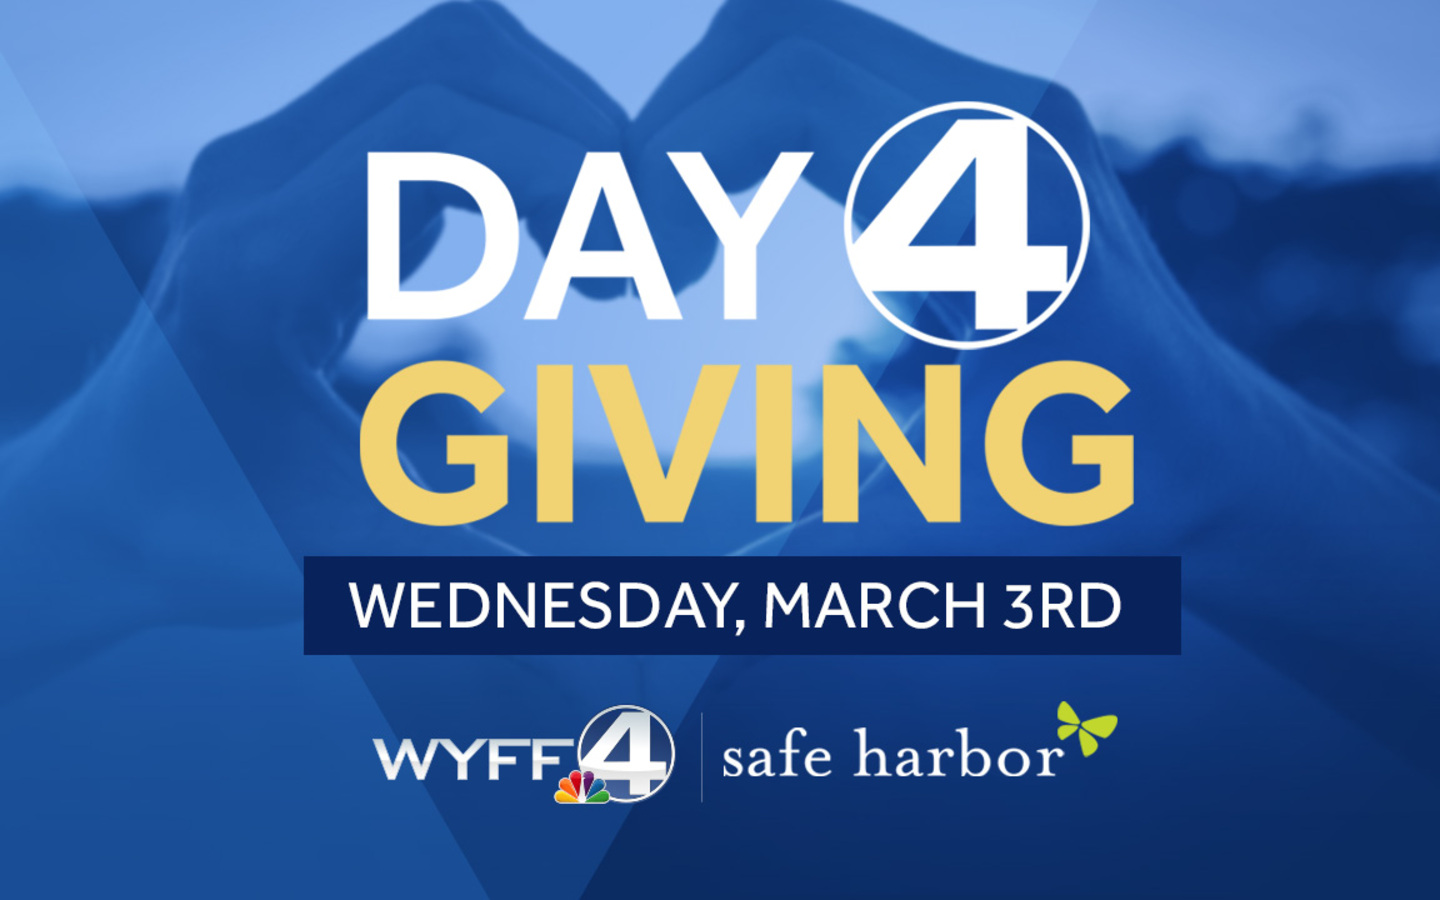 Day 4 Giving